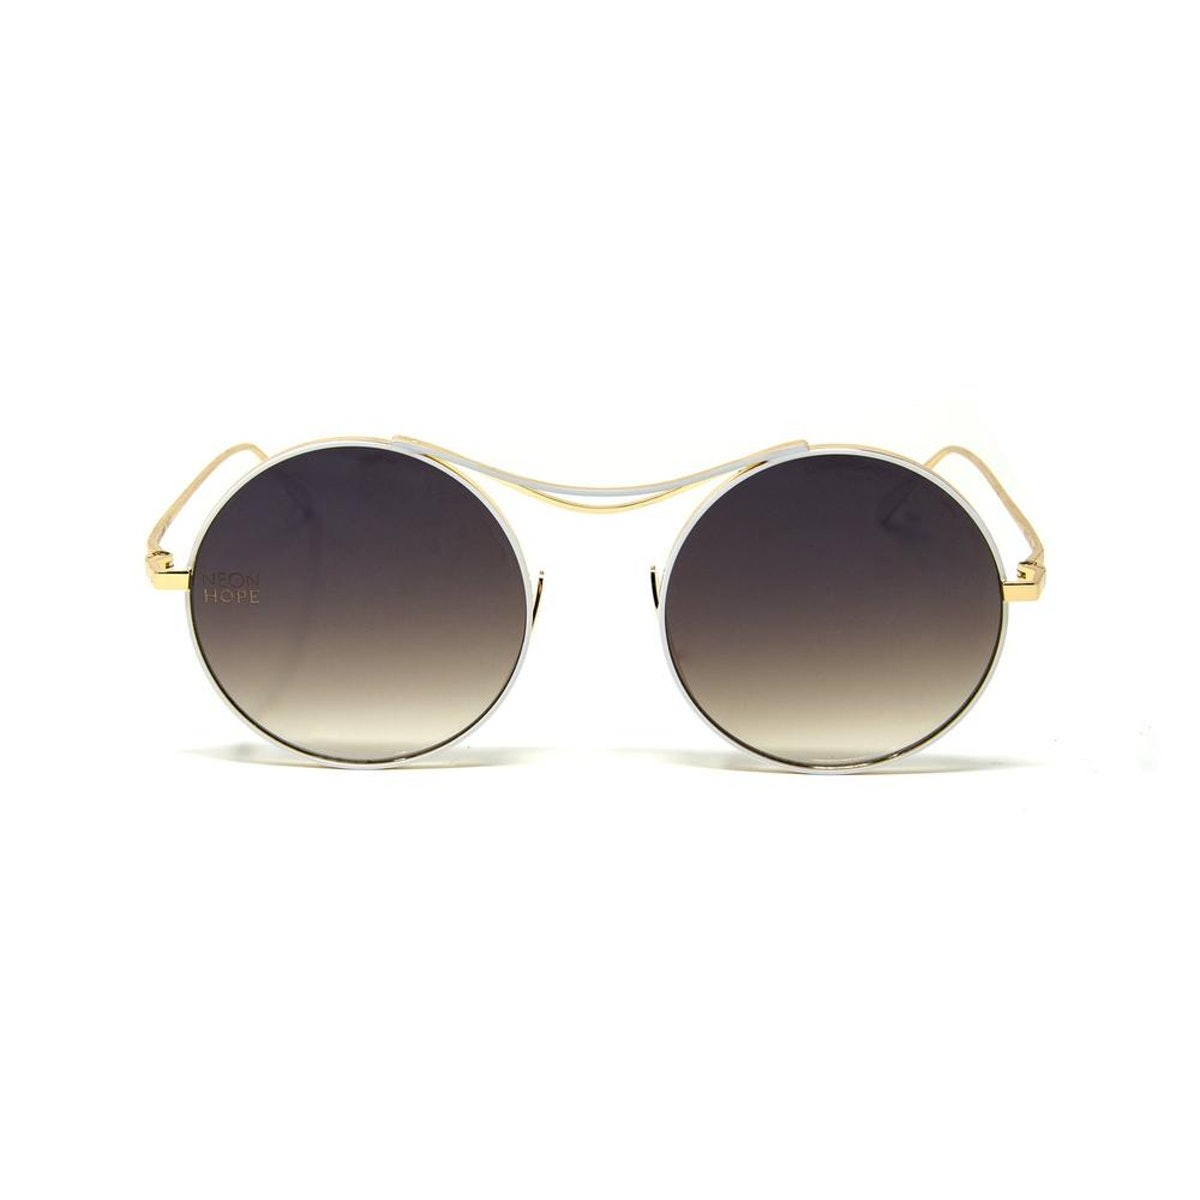 Sulis Round Sunglass Chain Set from Neon Hope, available to shop on McMullen.